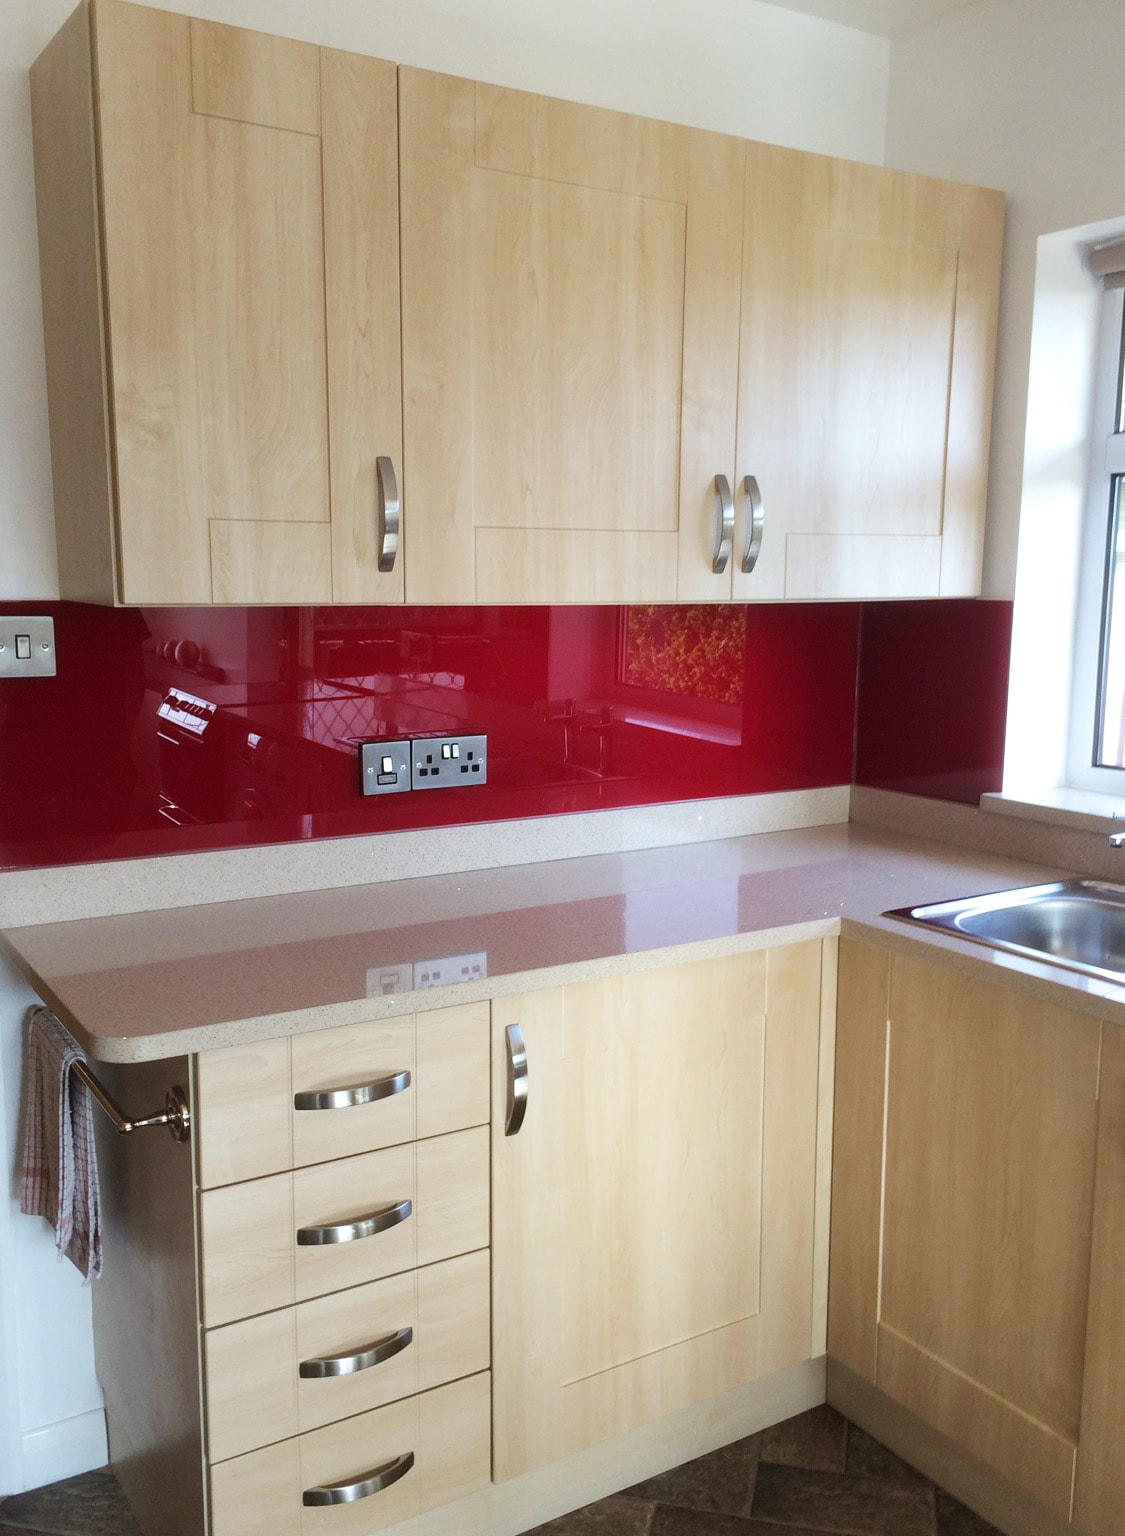 Full Kitchen Glass Splashback Coloured in Red Bordeaux